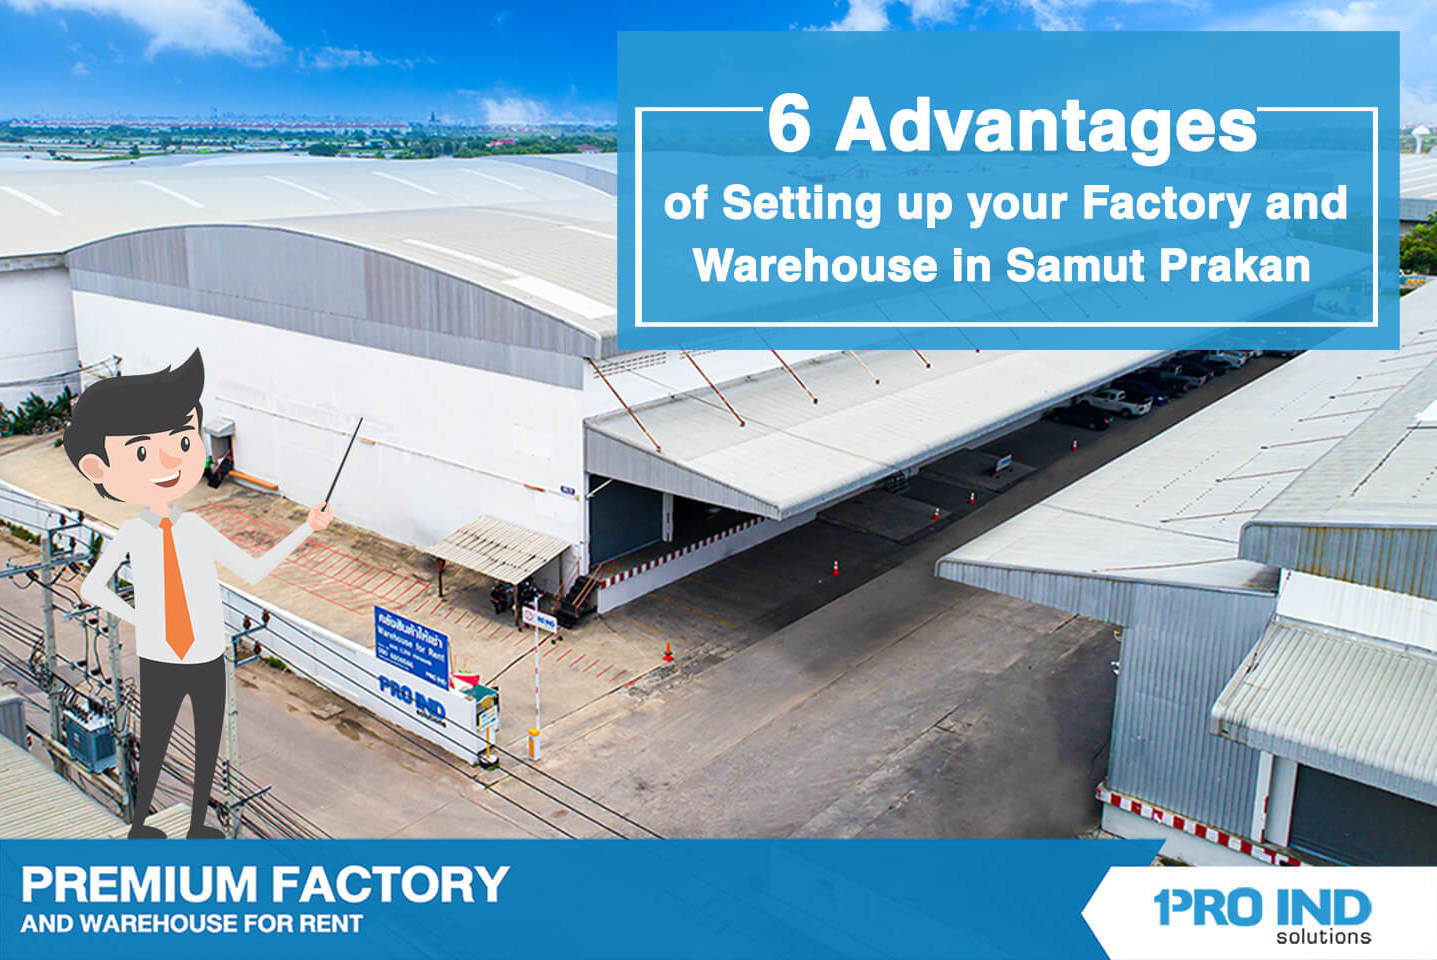 6 Advantages of Setting up your Factory and Warehouse in Samut Prakan